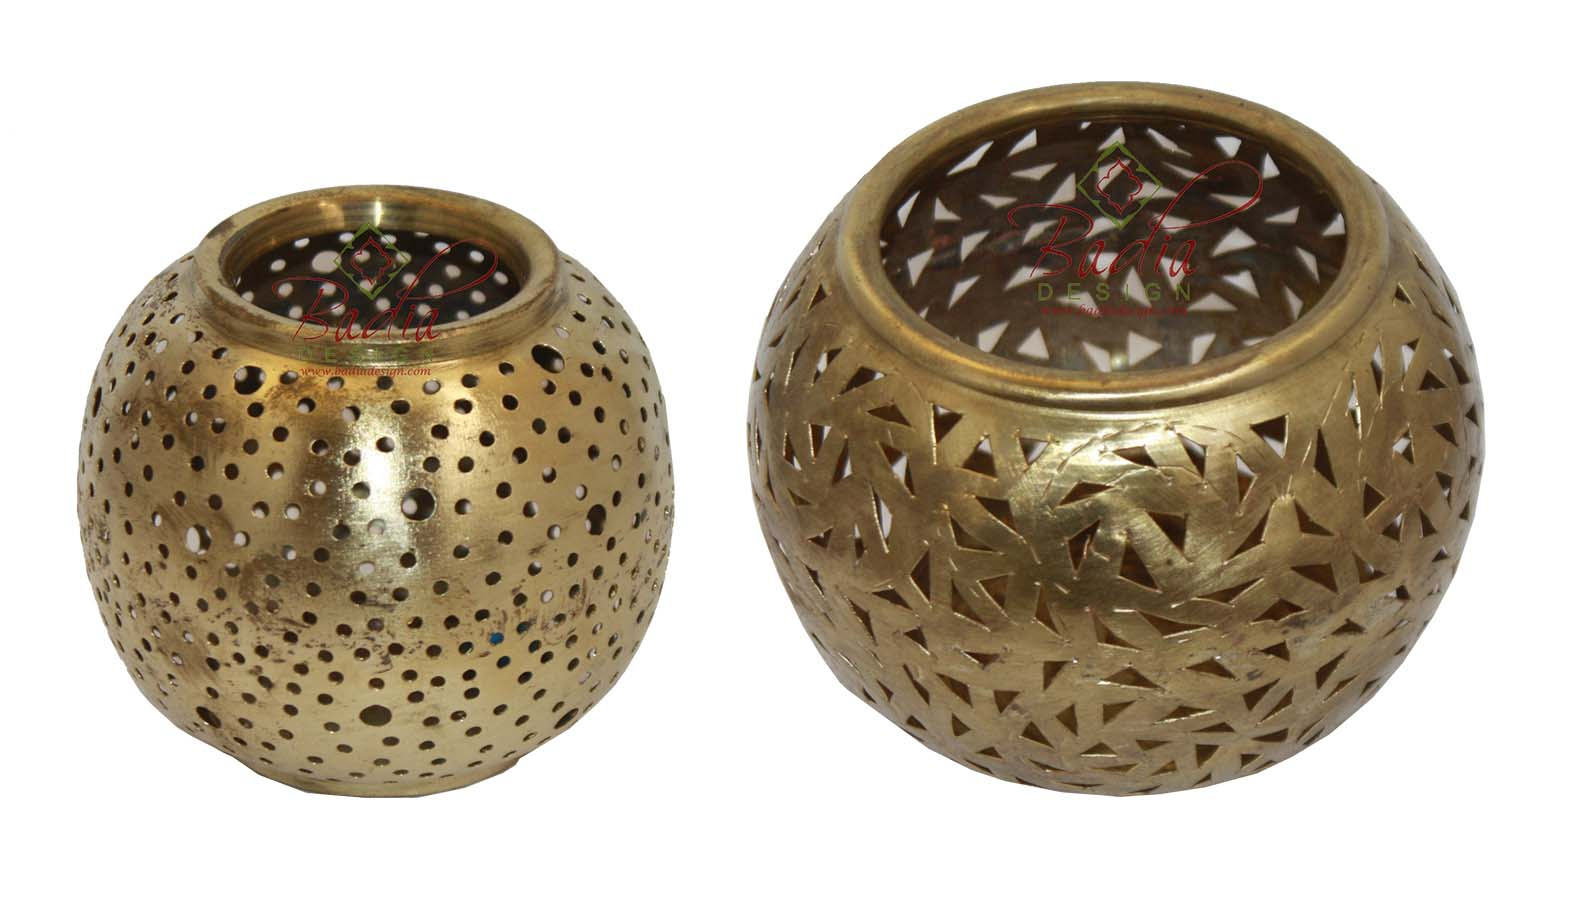 moroccan-brass-candle-holder-hd183.jpg